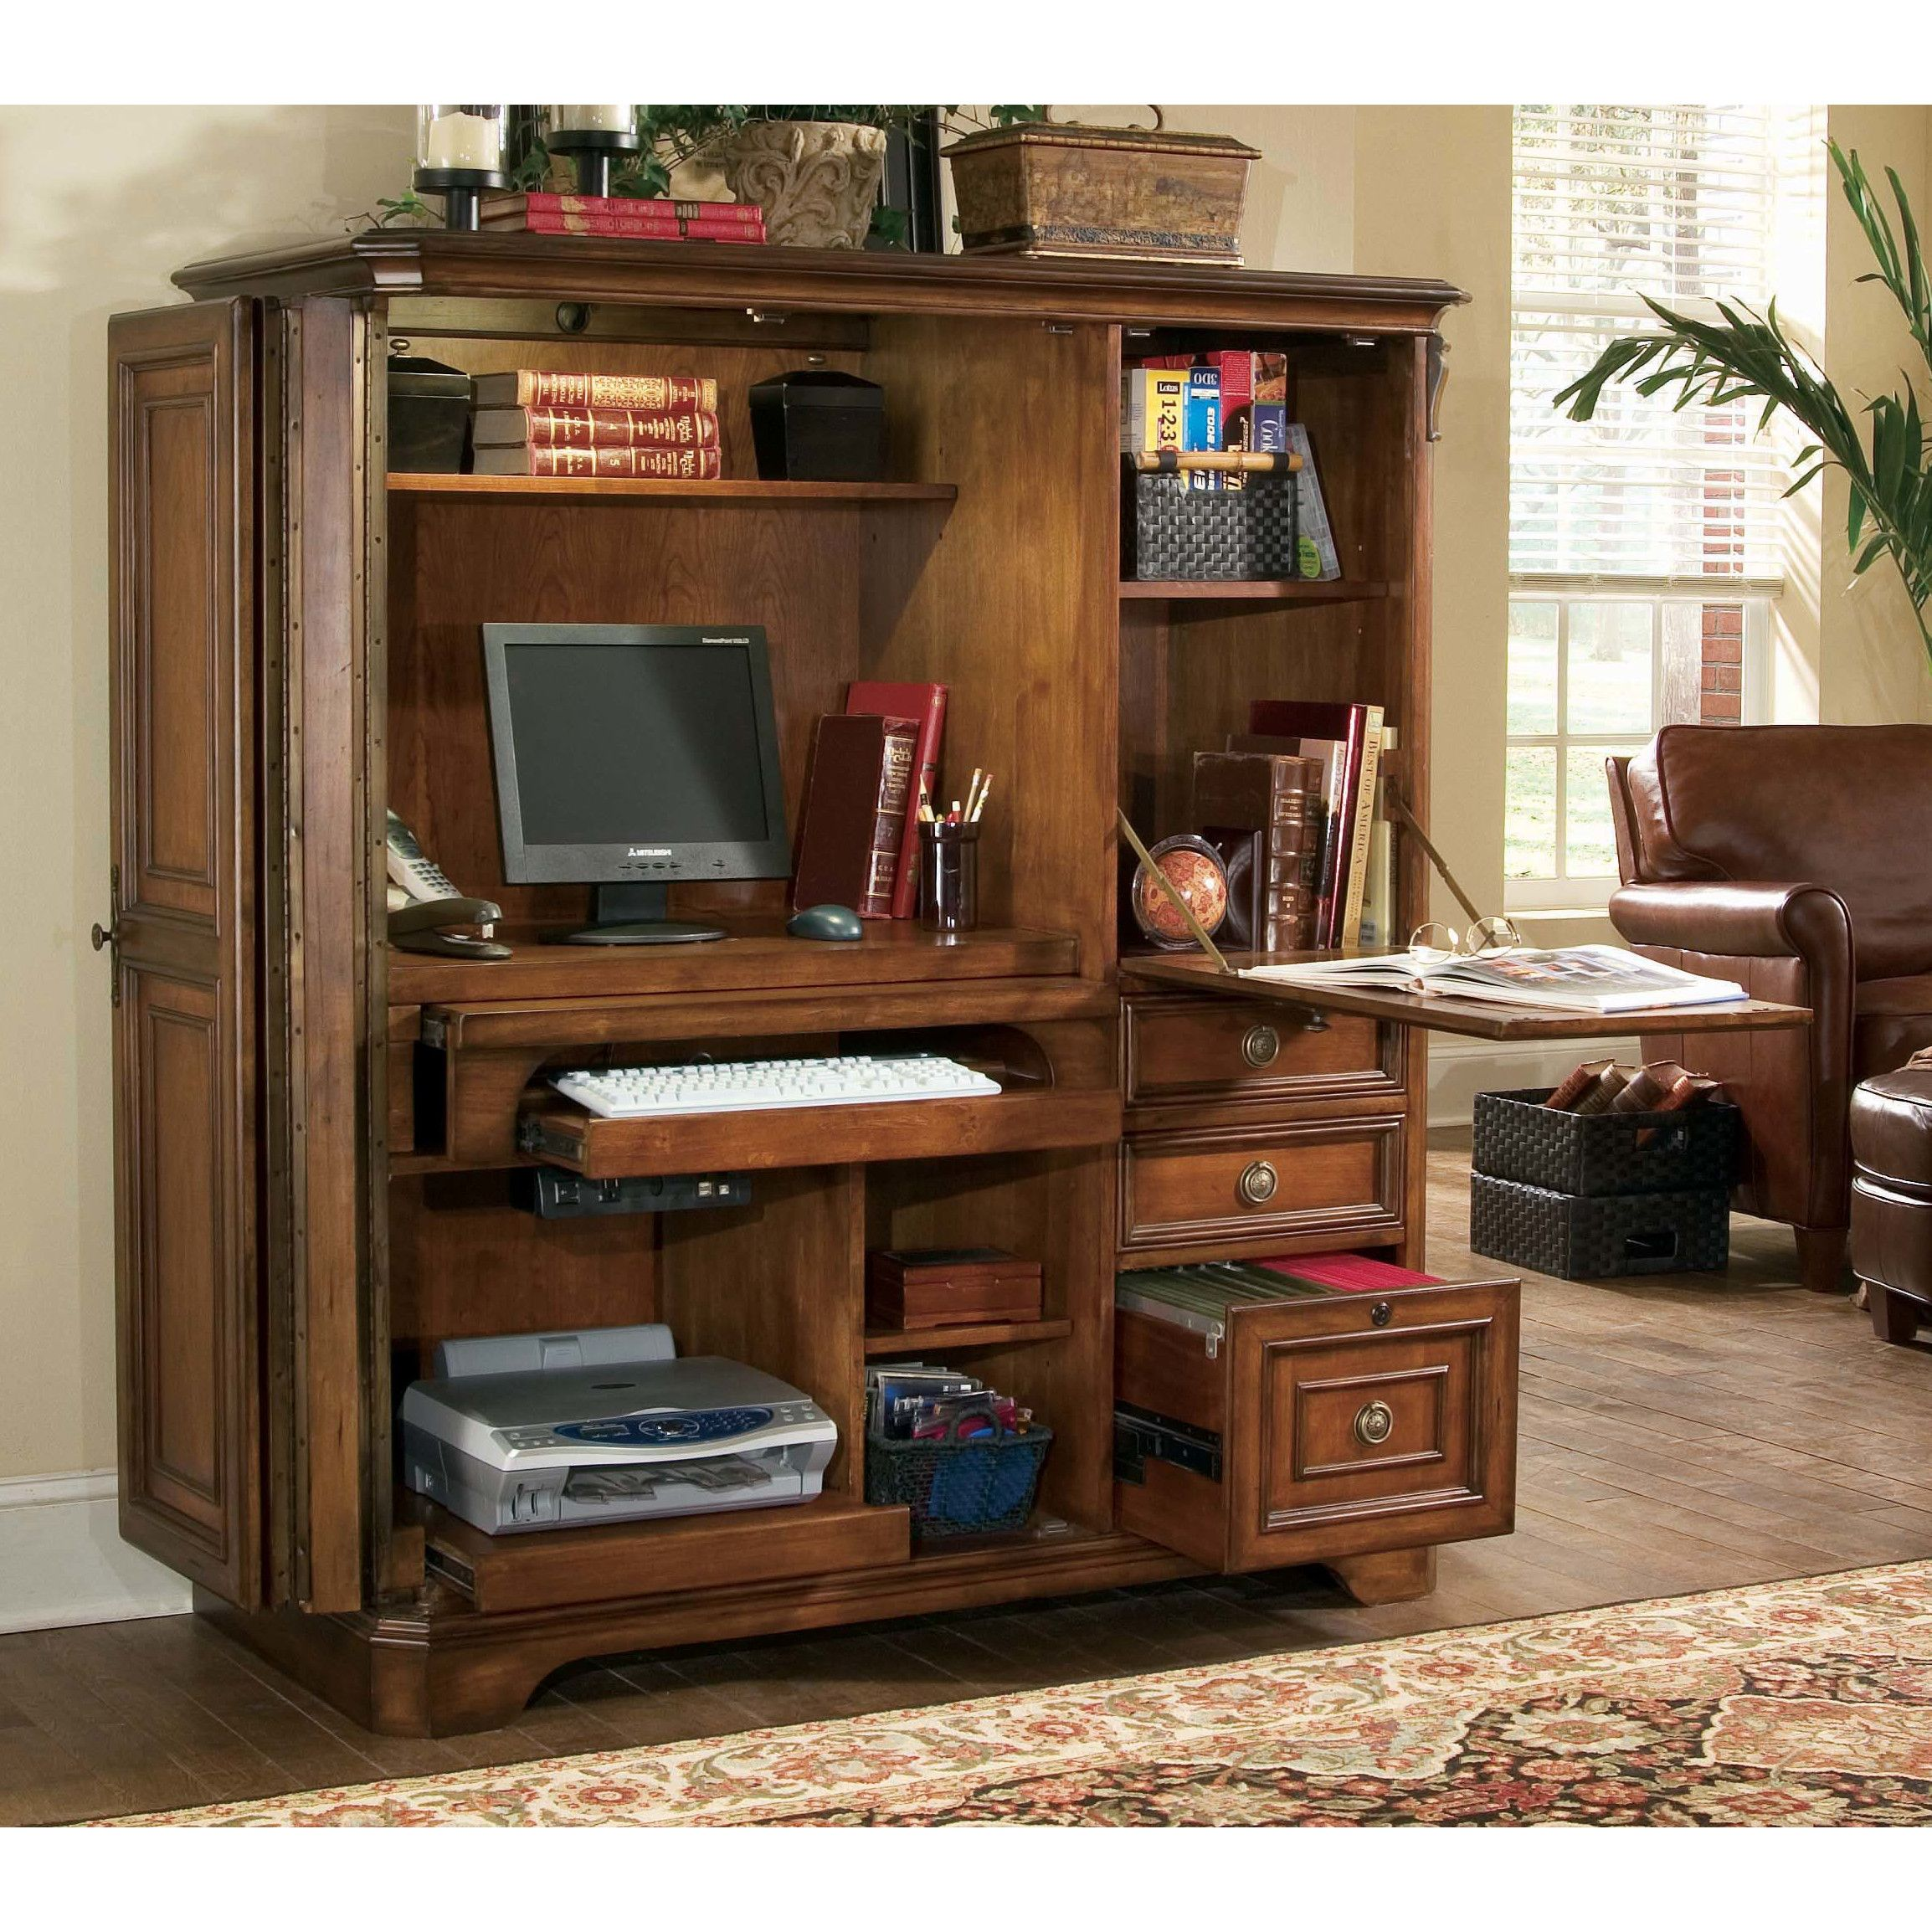 Hooker Furniture Brookhaven Armoire Desk fice